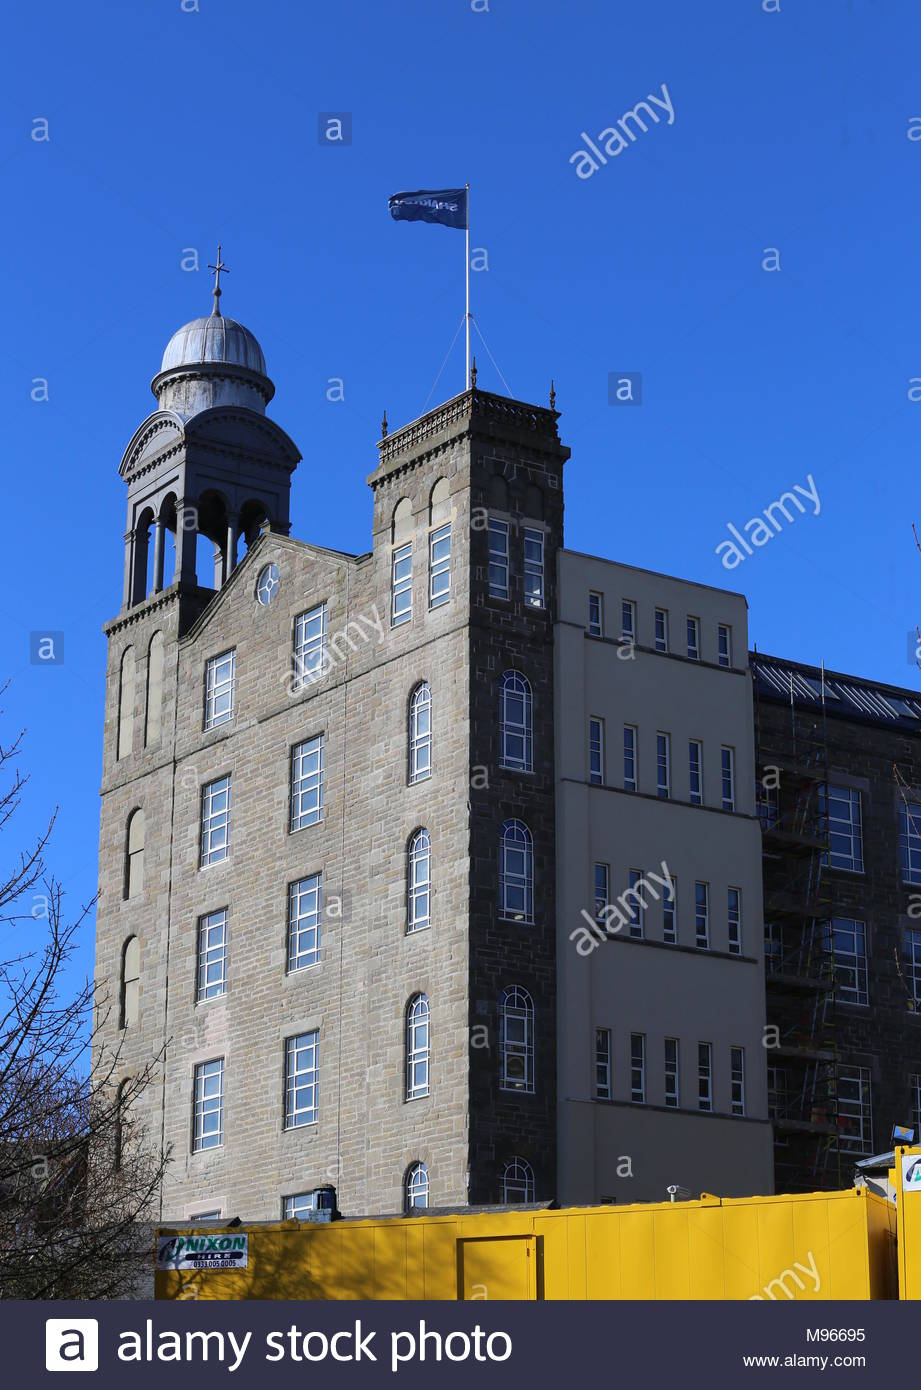 Former Baxter Brothers Mills being refurbished into Hotel Indigo Dundee Scotland  March 2018 - Stock Image